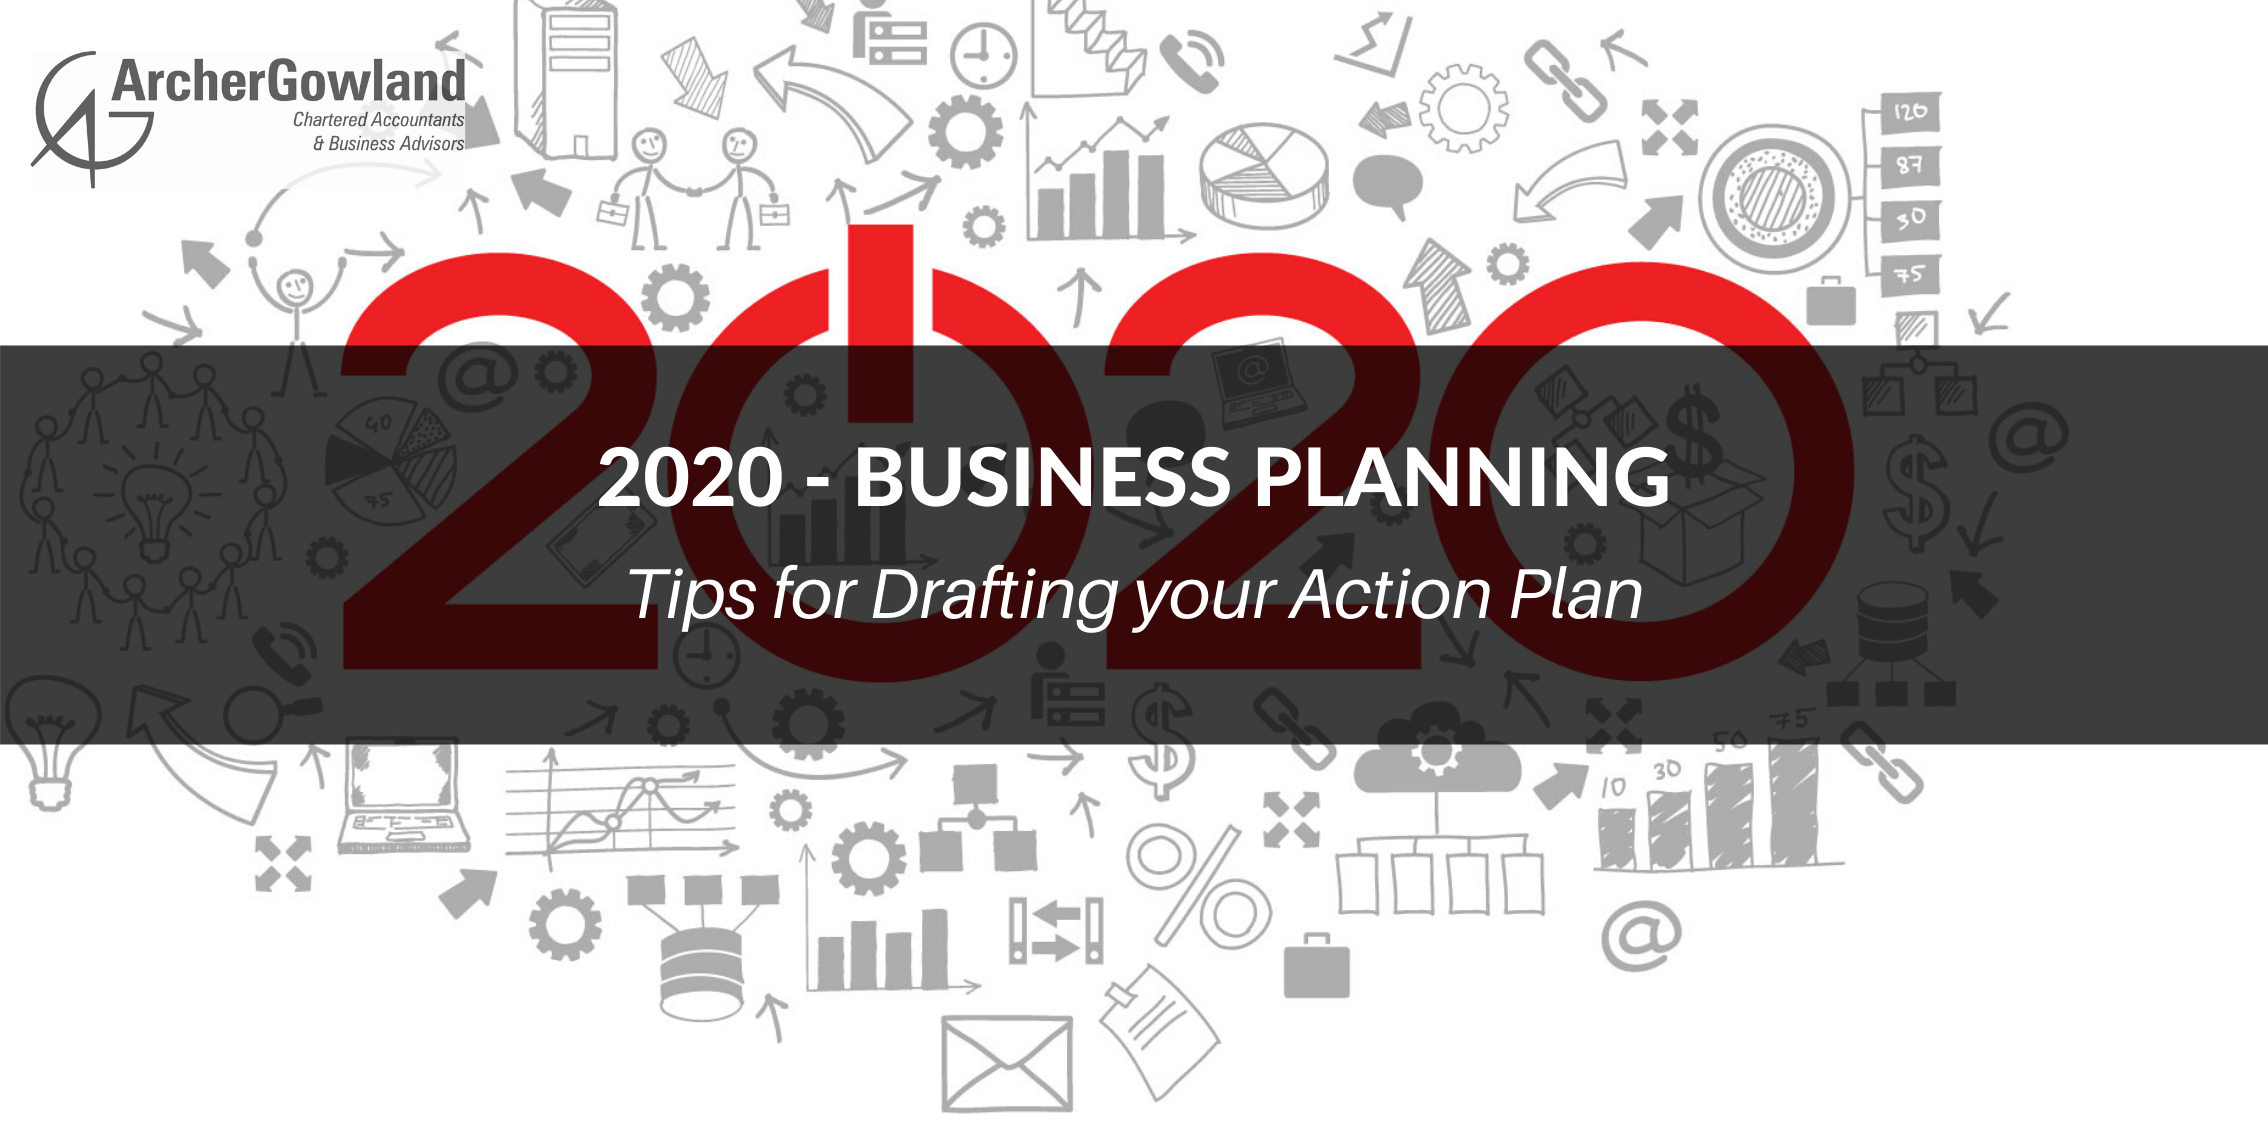 2020 - New Year Business Planning - Tips to Drafting your Action Plan